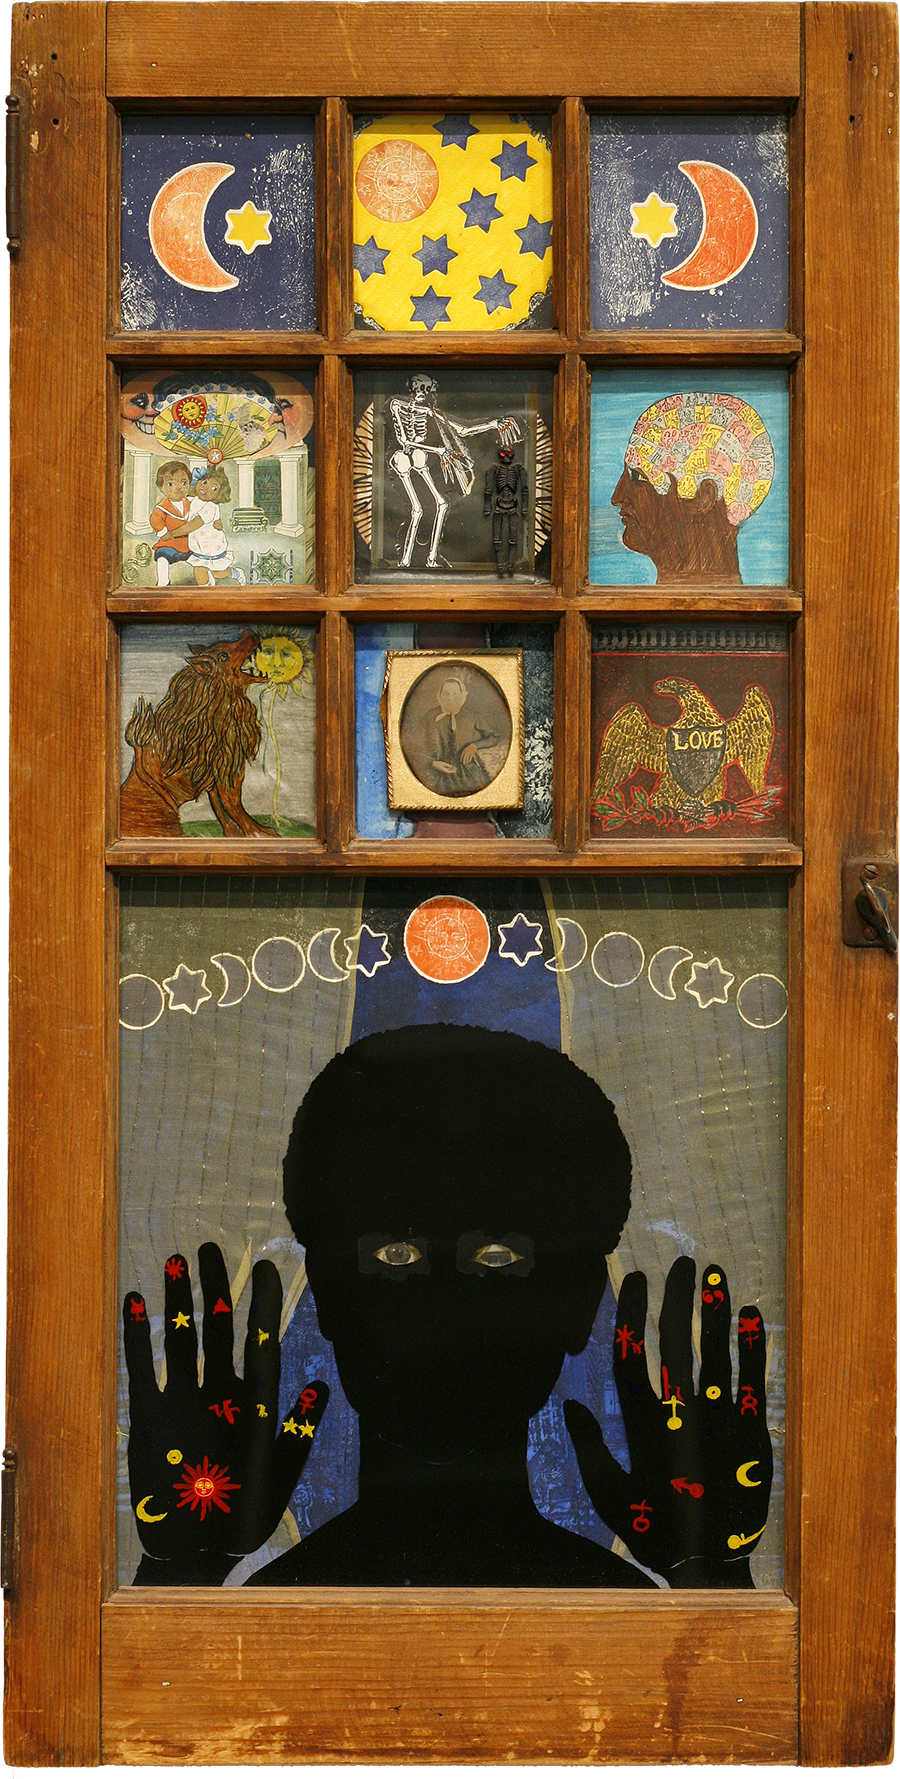 "Betye Saar (b.1926) Black Girl's Window, 1969 assemblage in window 35 3/4"" x 18"" x 1 1/2"", signed and dated Collection of the Museum of Modern Art, New York, NY; Courtesy of Michael Rosenfeld Gallery LLC, New York, NY"